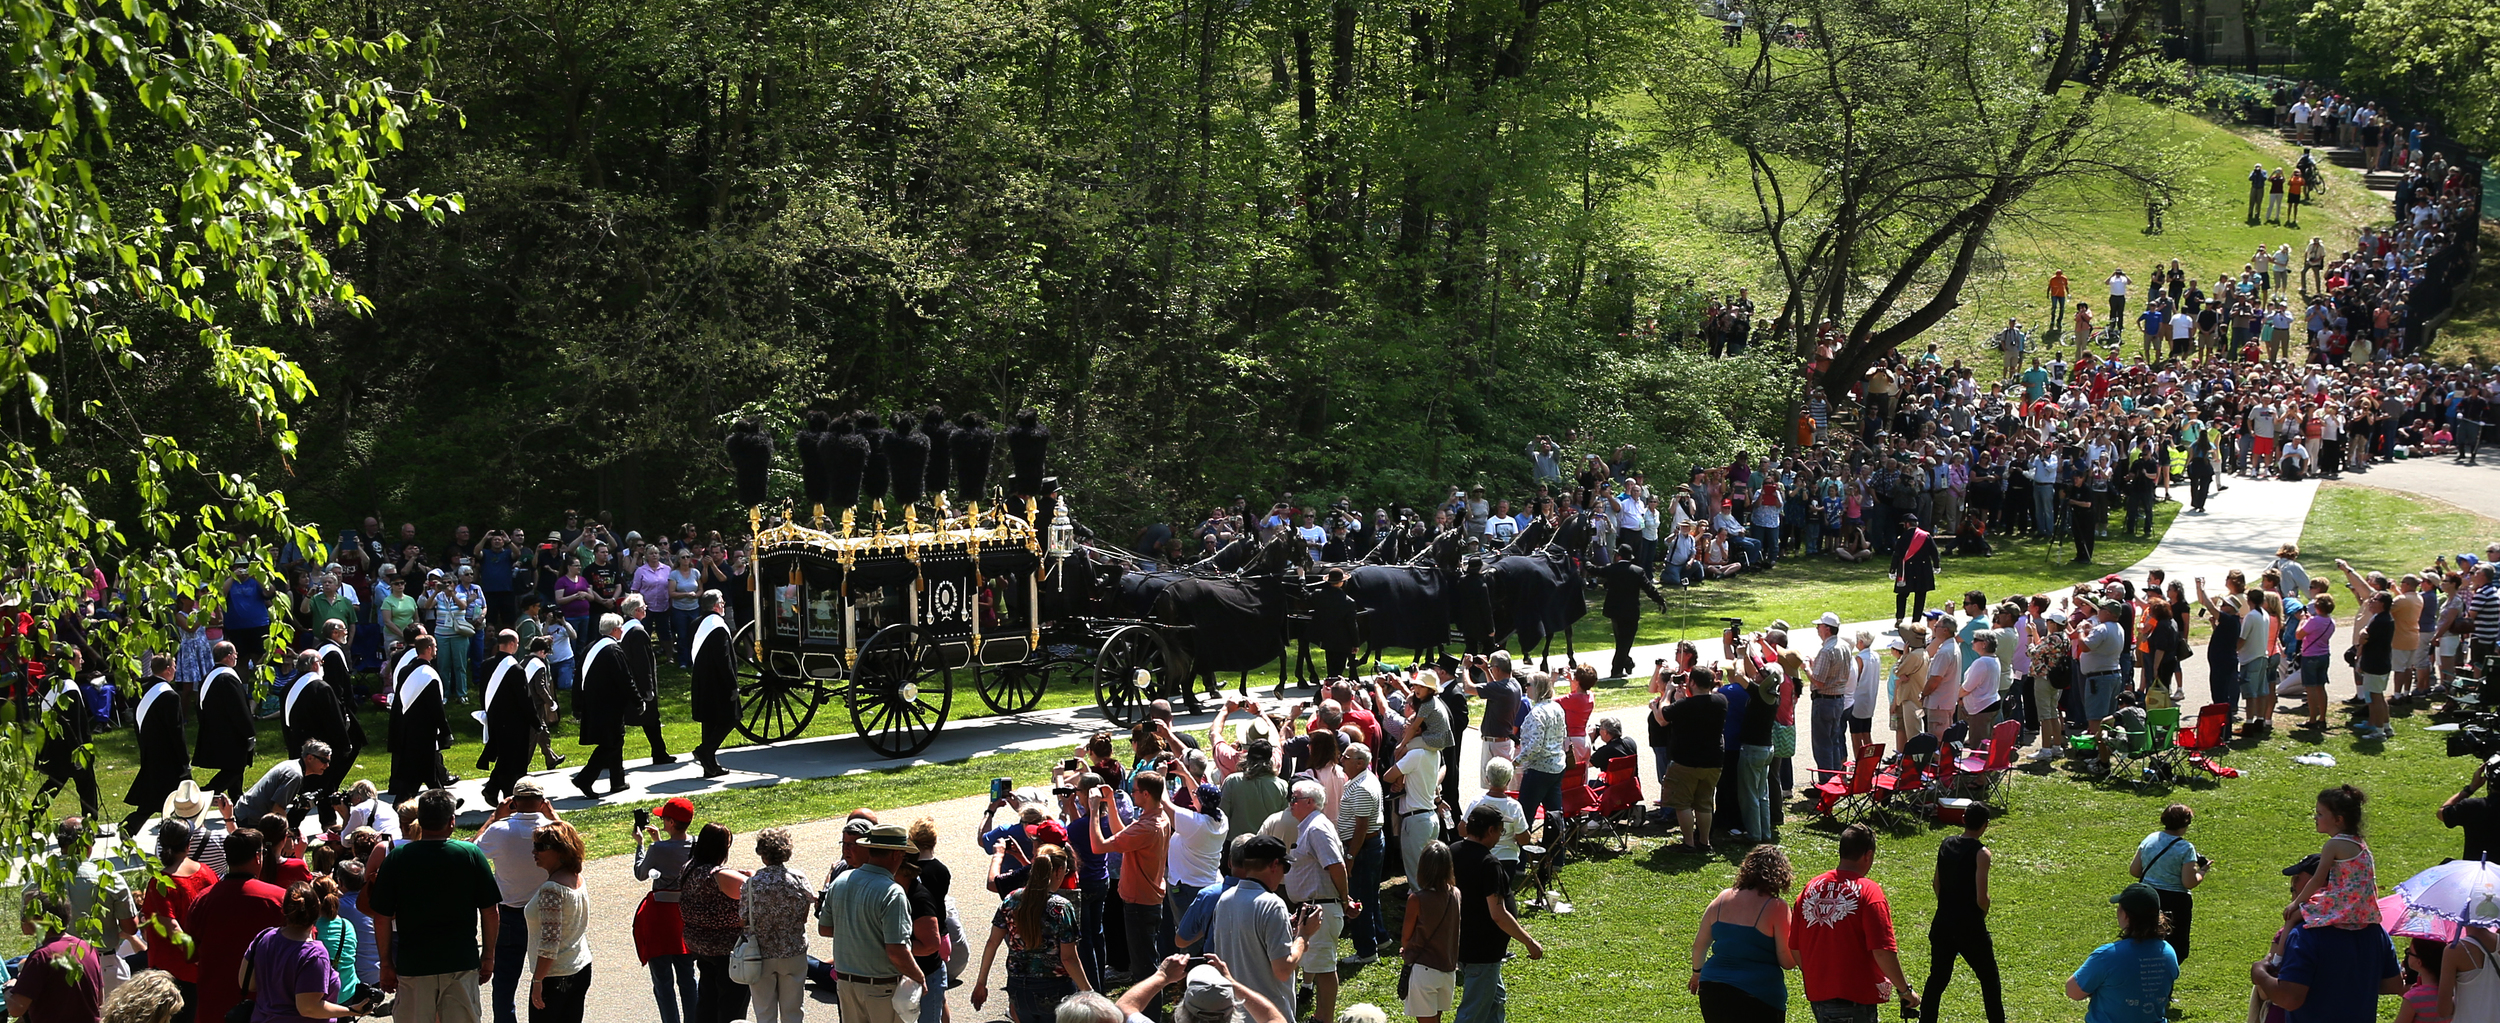 Theprocession reaches Oak Ridge Cemetery and approaches thereceiving vault. David Spencer/The State Journal-Register